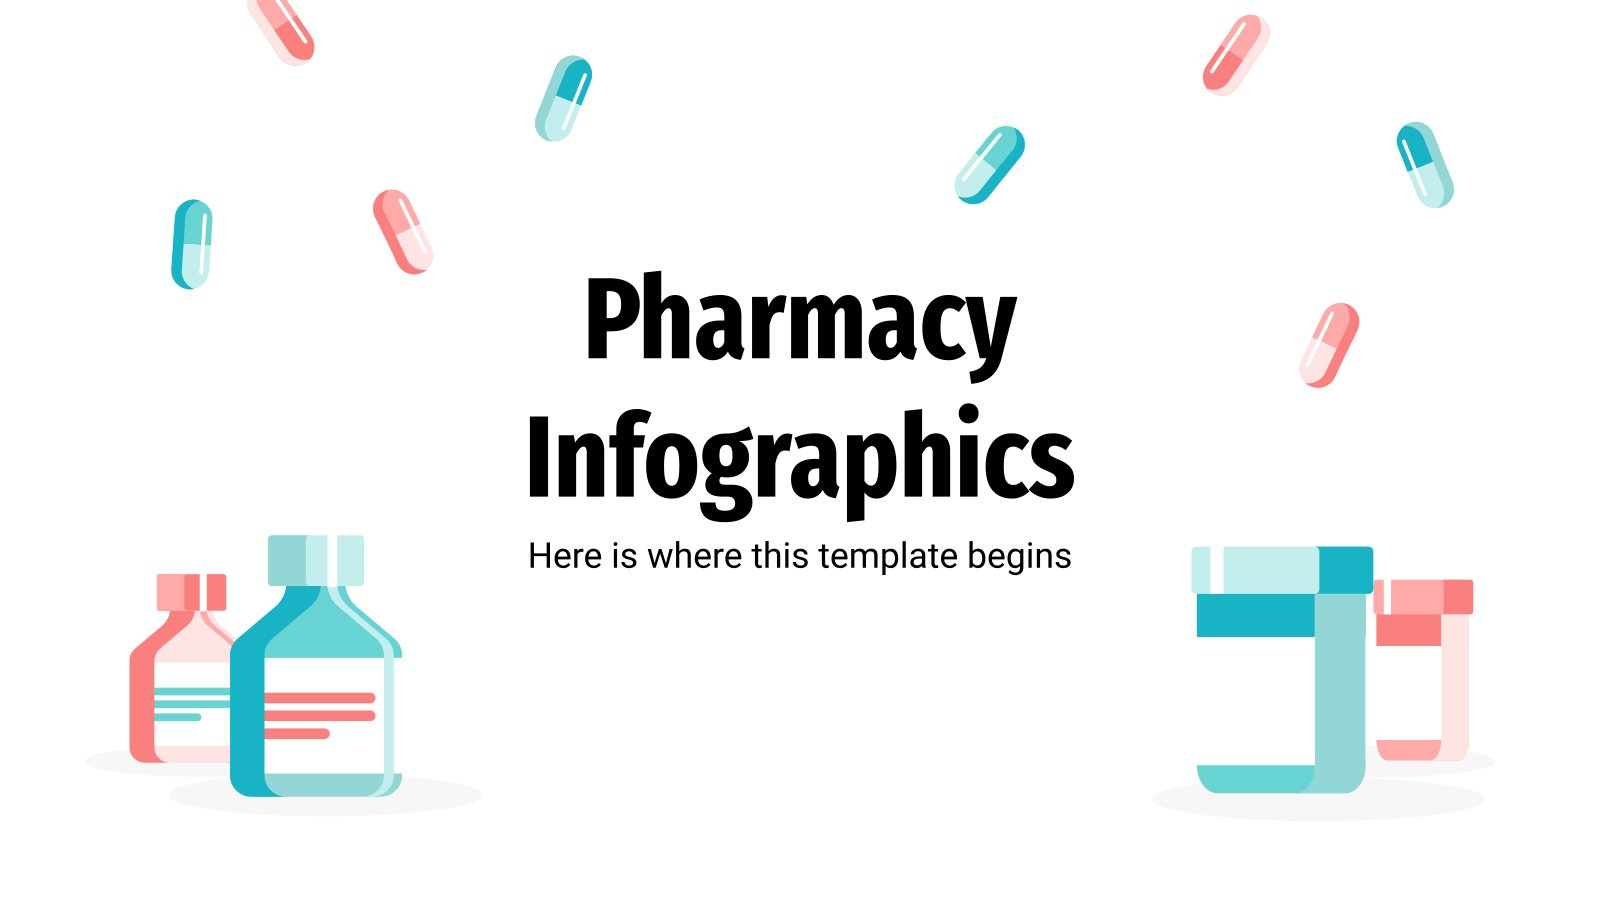 Pharmacy Infographics presentation template